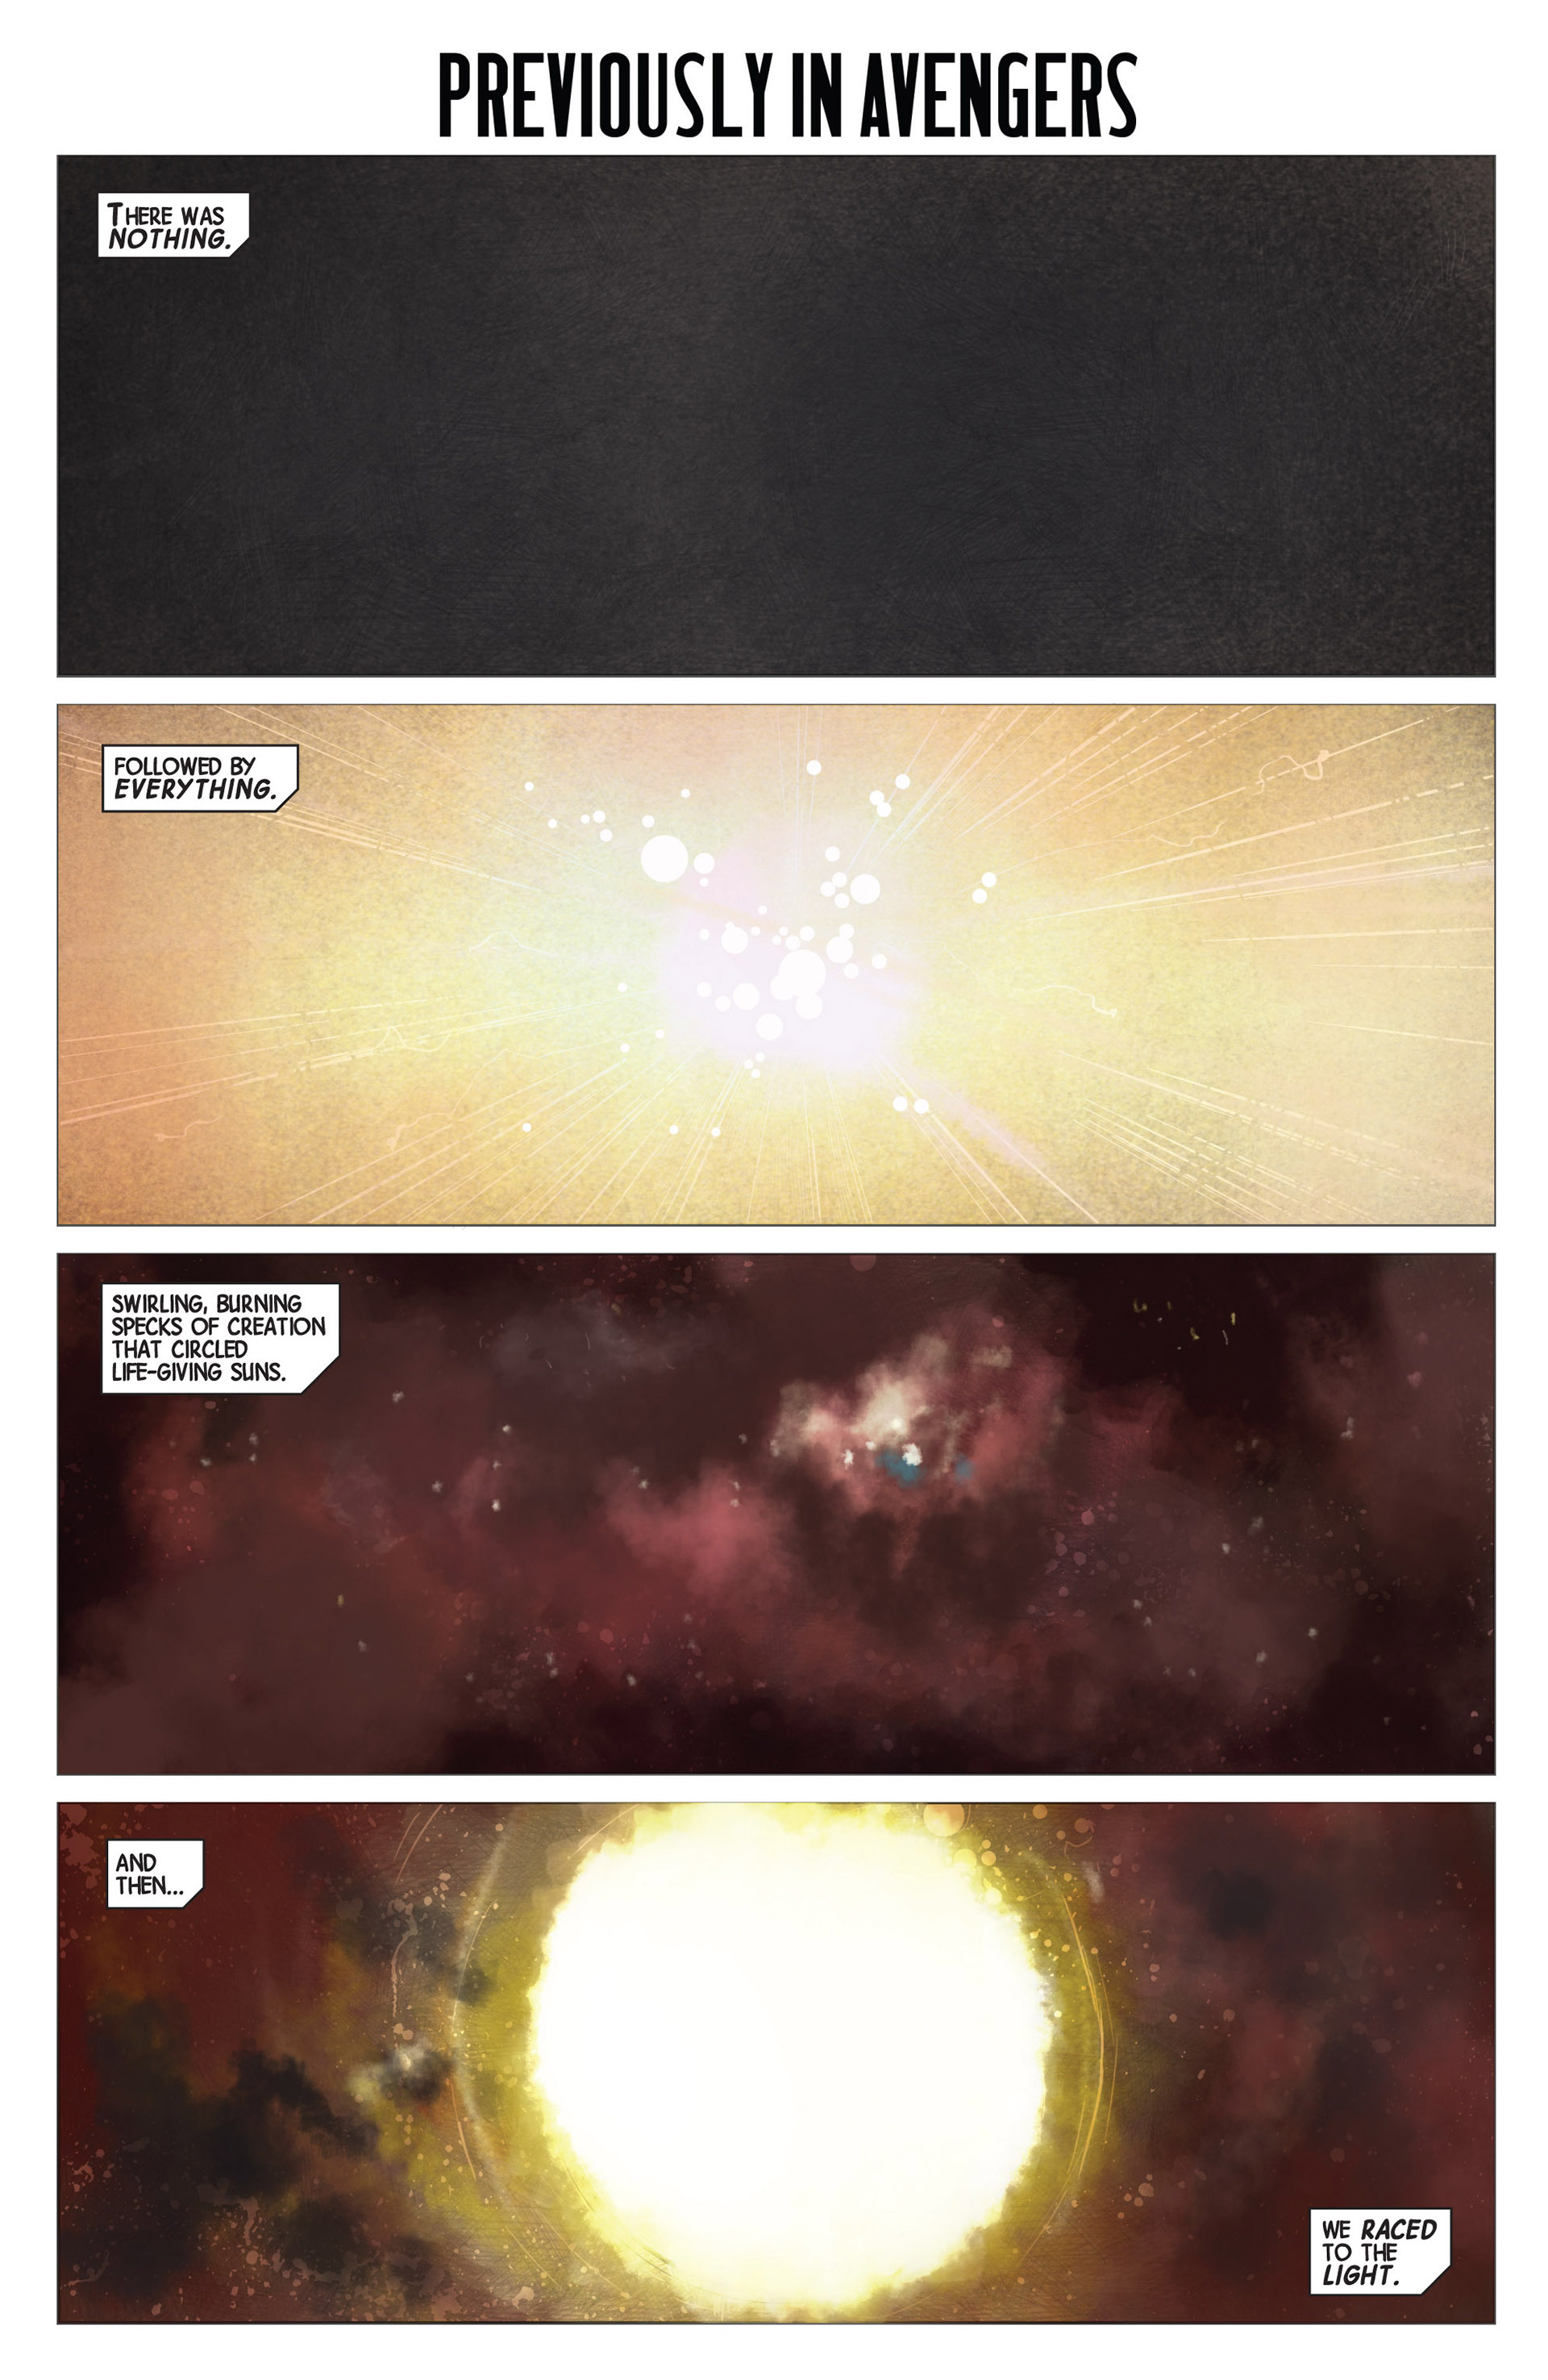 Avengers #1, art by Jerome Opeña and Dean White